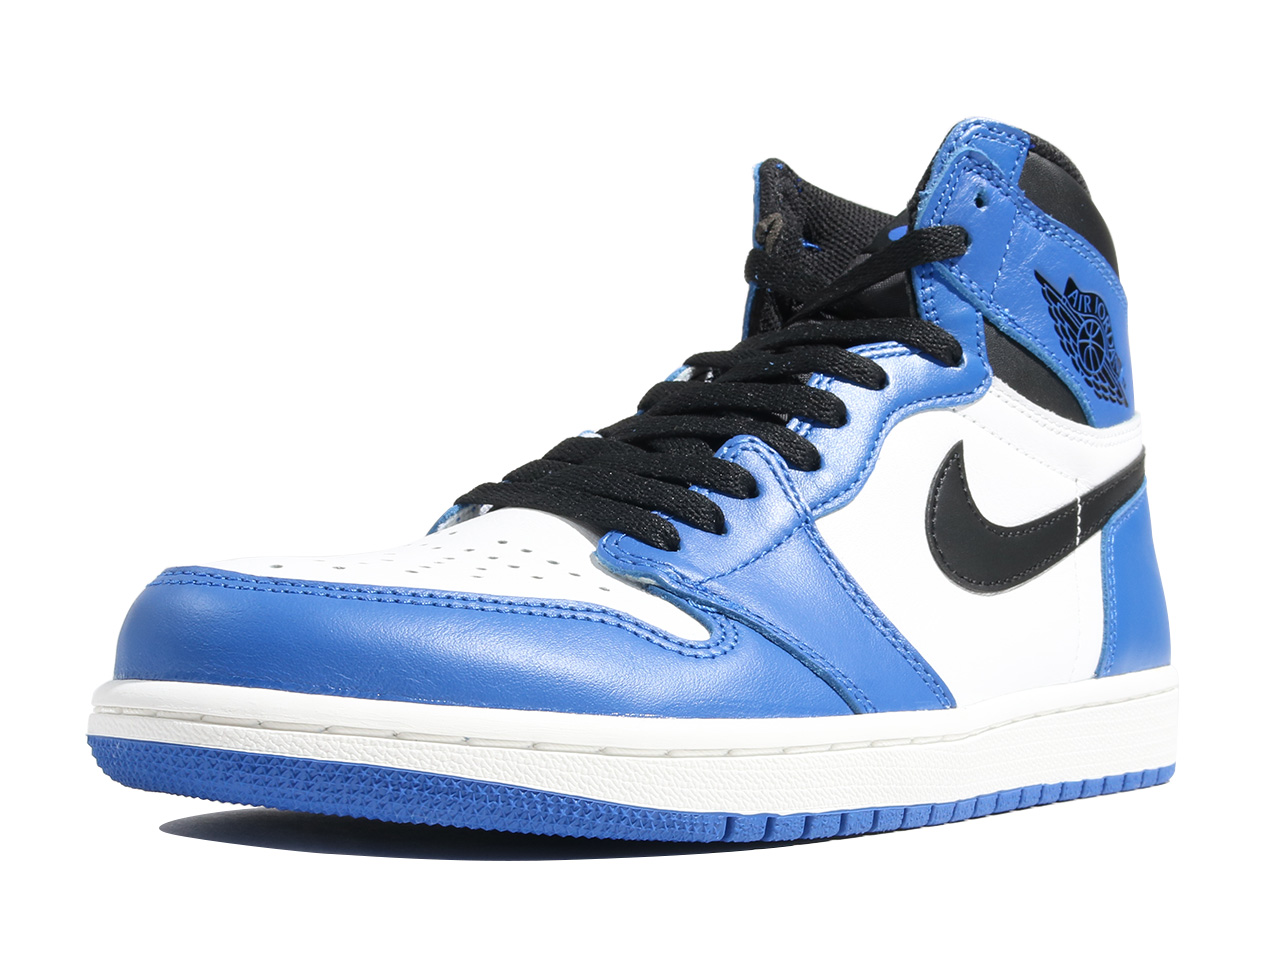 nike_air_jordan_1_retro_high_og_555088_403